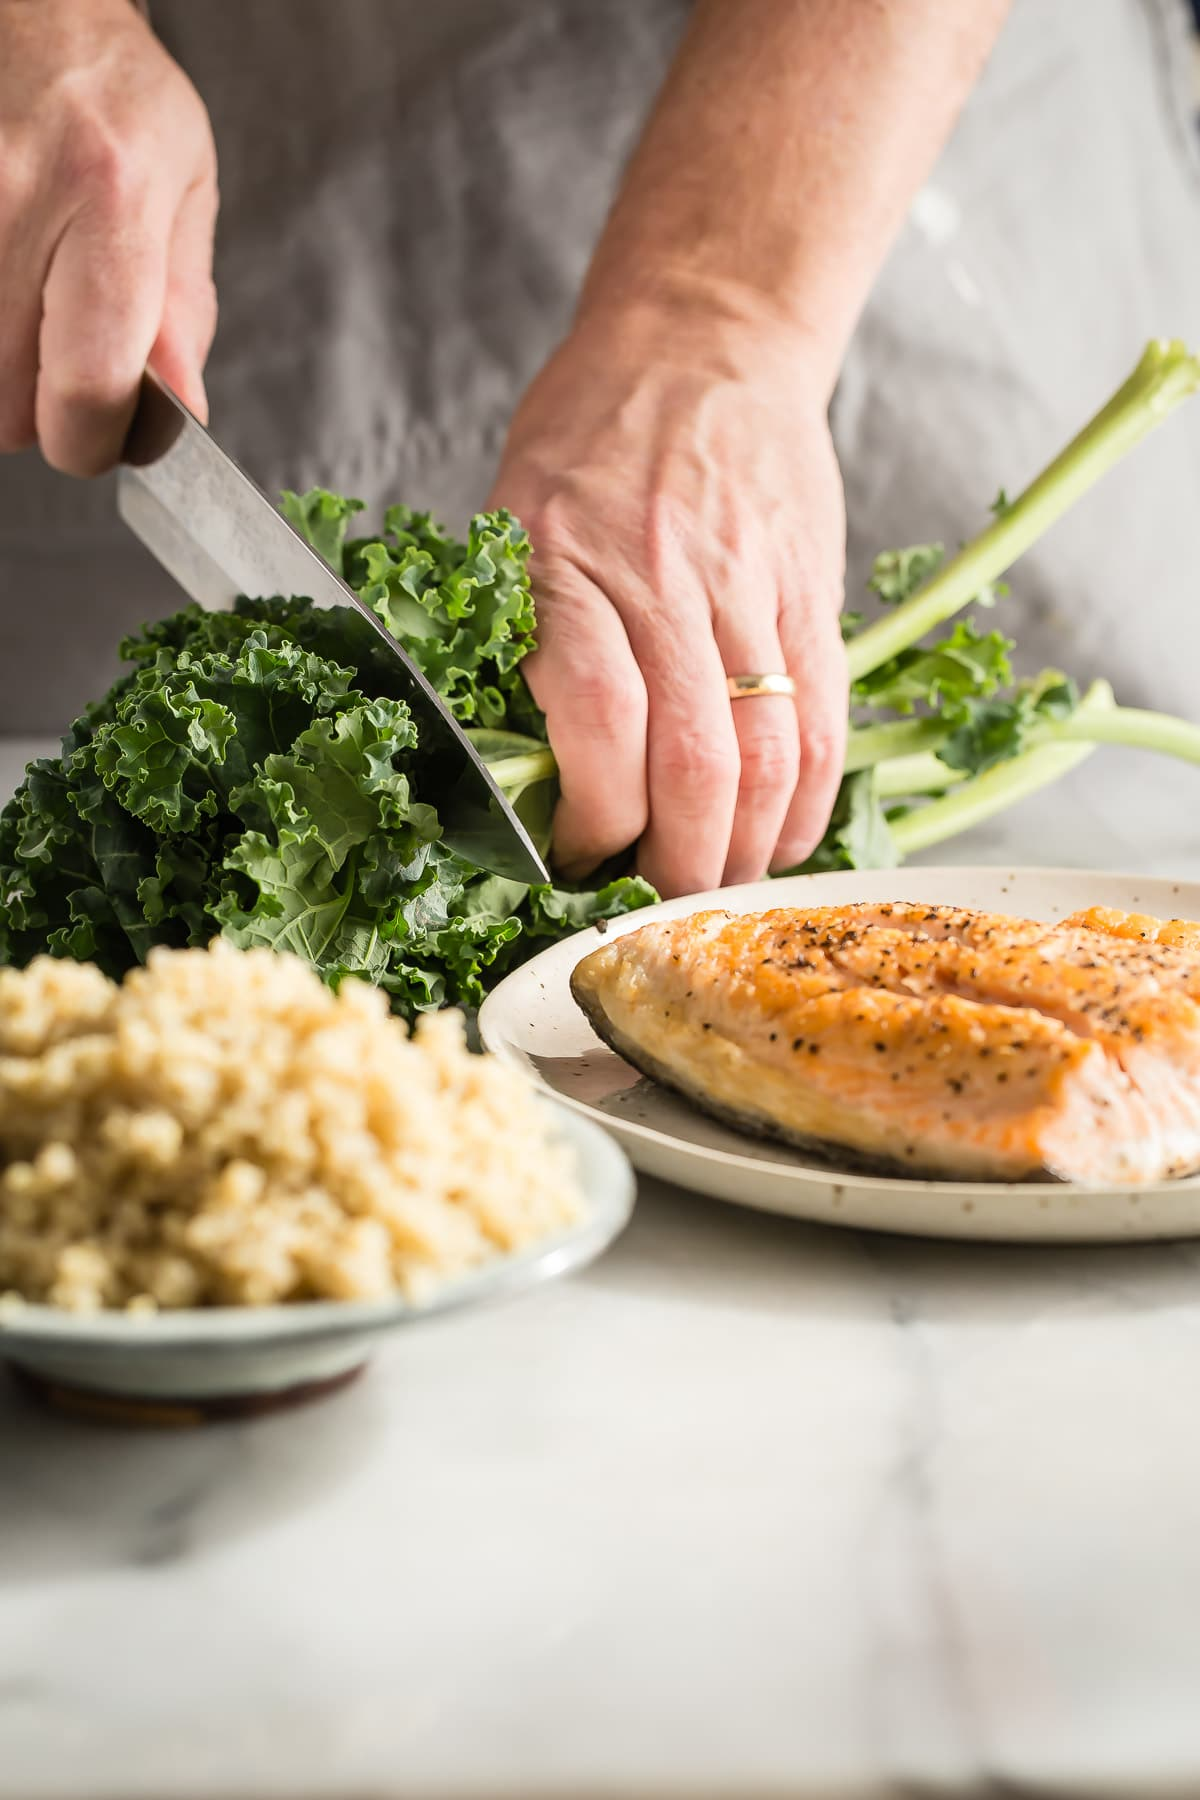 Roasted salmon flakes with quinoa and fresh steamed kale. This healthy kale salad is dressed in a tangy garlic and lemon sauce.